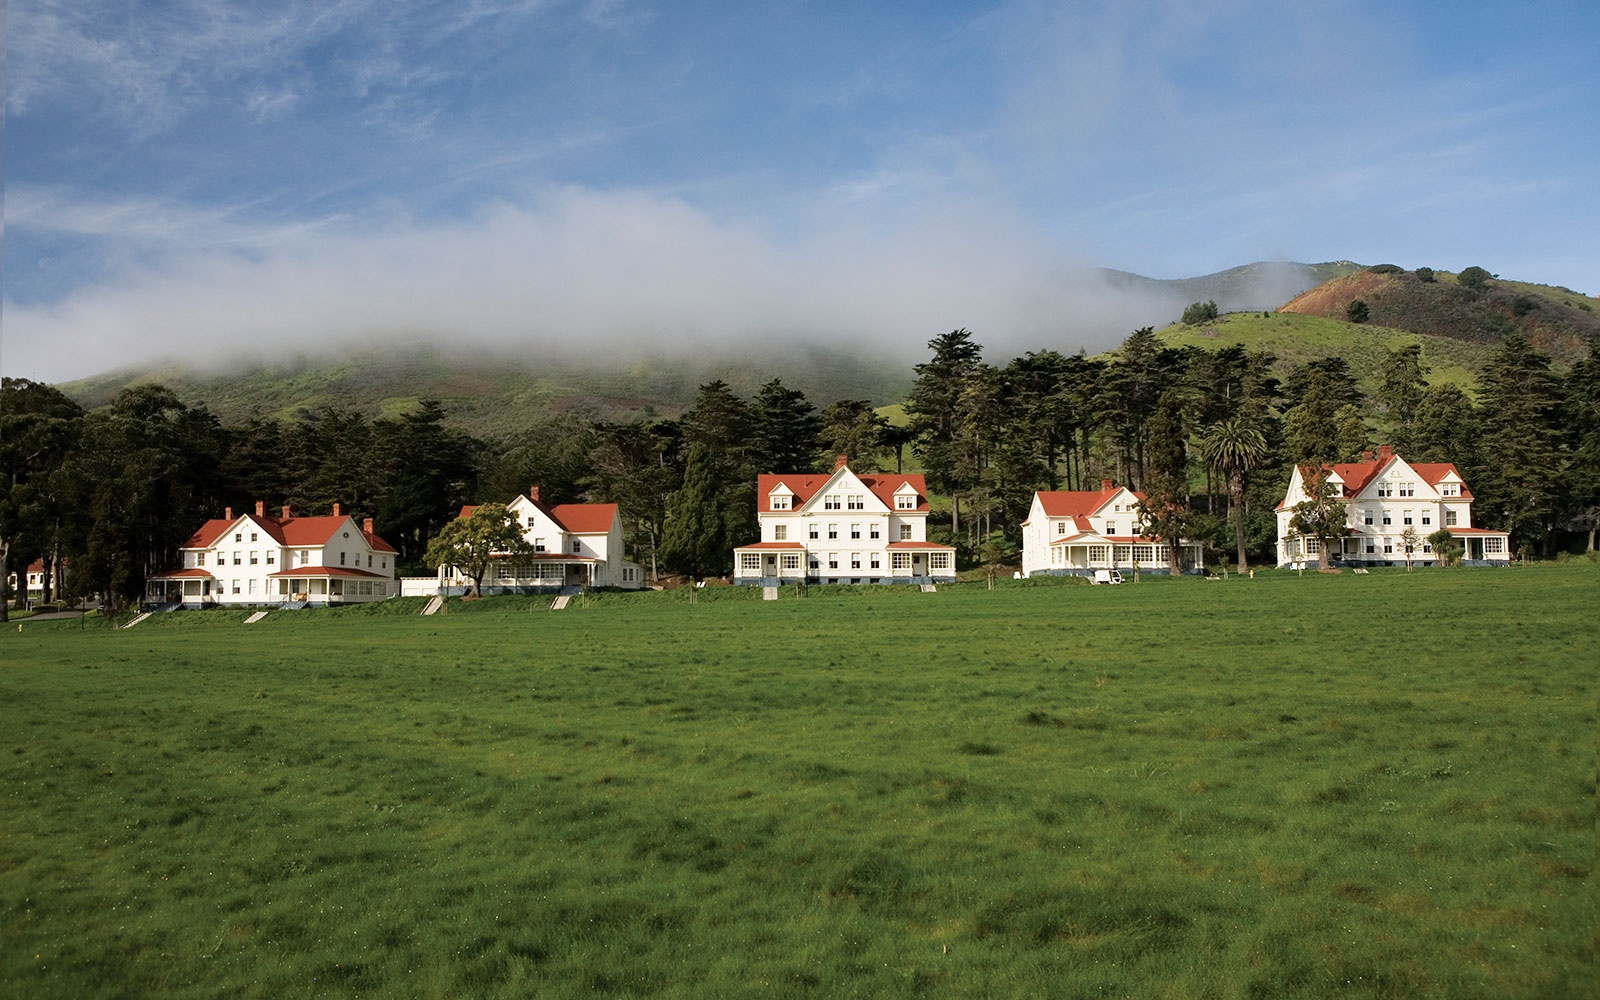 No. 13 Cavallo Point—The Lodge at the Golden Gate, Sausalito, California